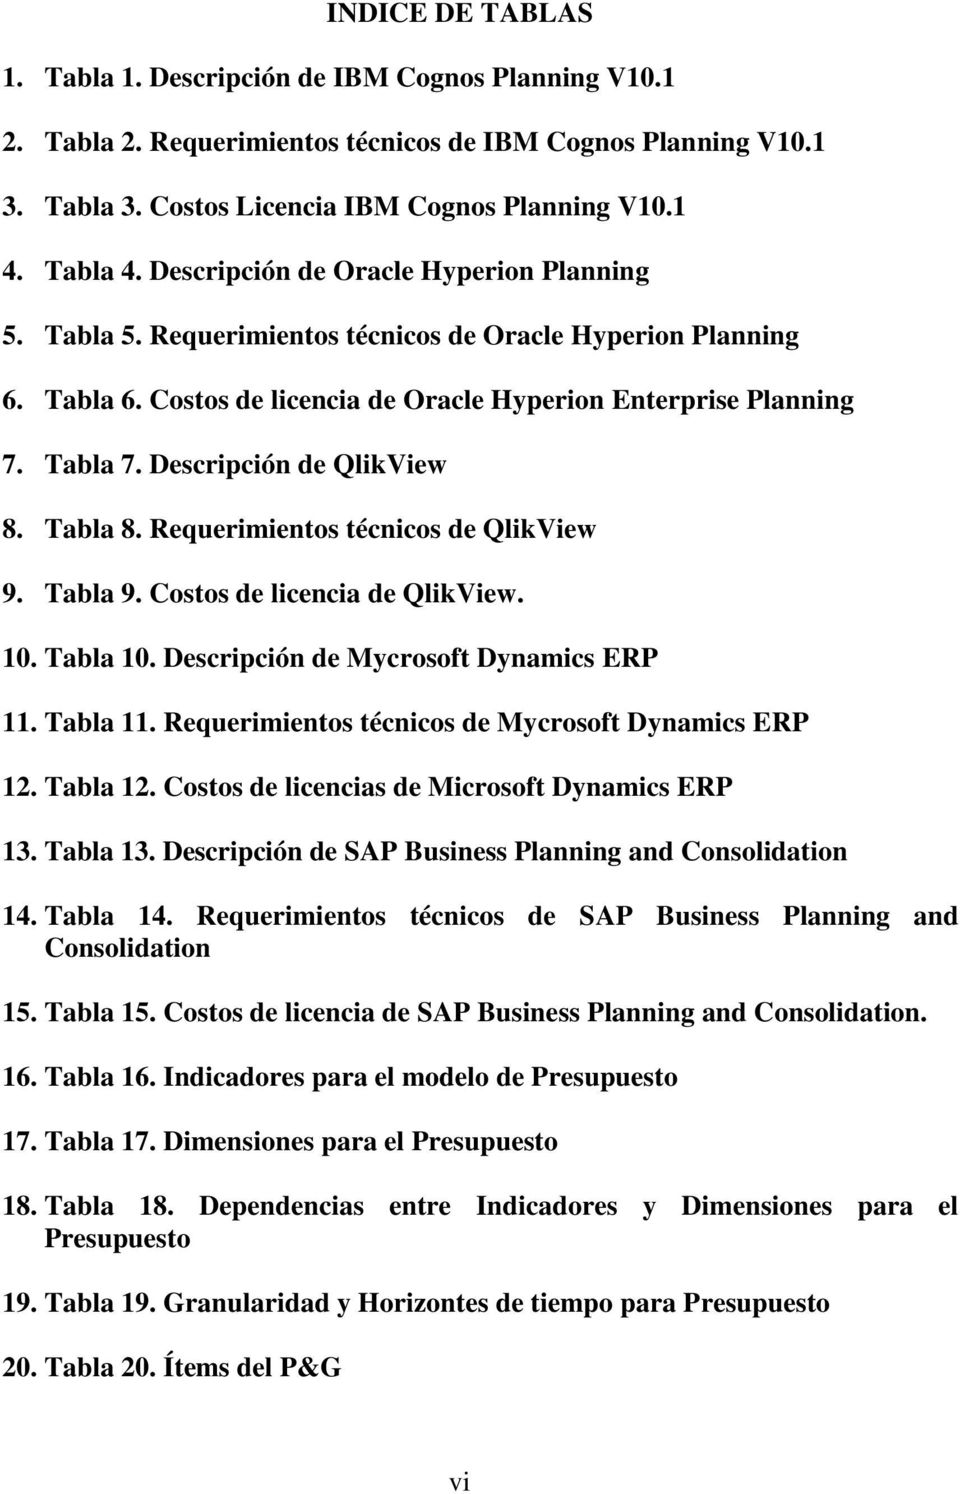 Descripción de QlikView 8. Tabla 8. Requerimientos técnicos de QlikView 9. Tabla 9. Costos de licencia de QlikView. 10. Tabla 10. Descripción de Mycrosoft Dynamics ERP 11. Tabla 11.